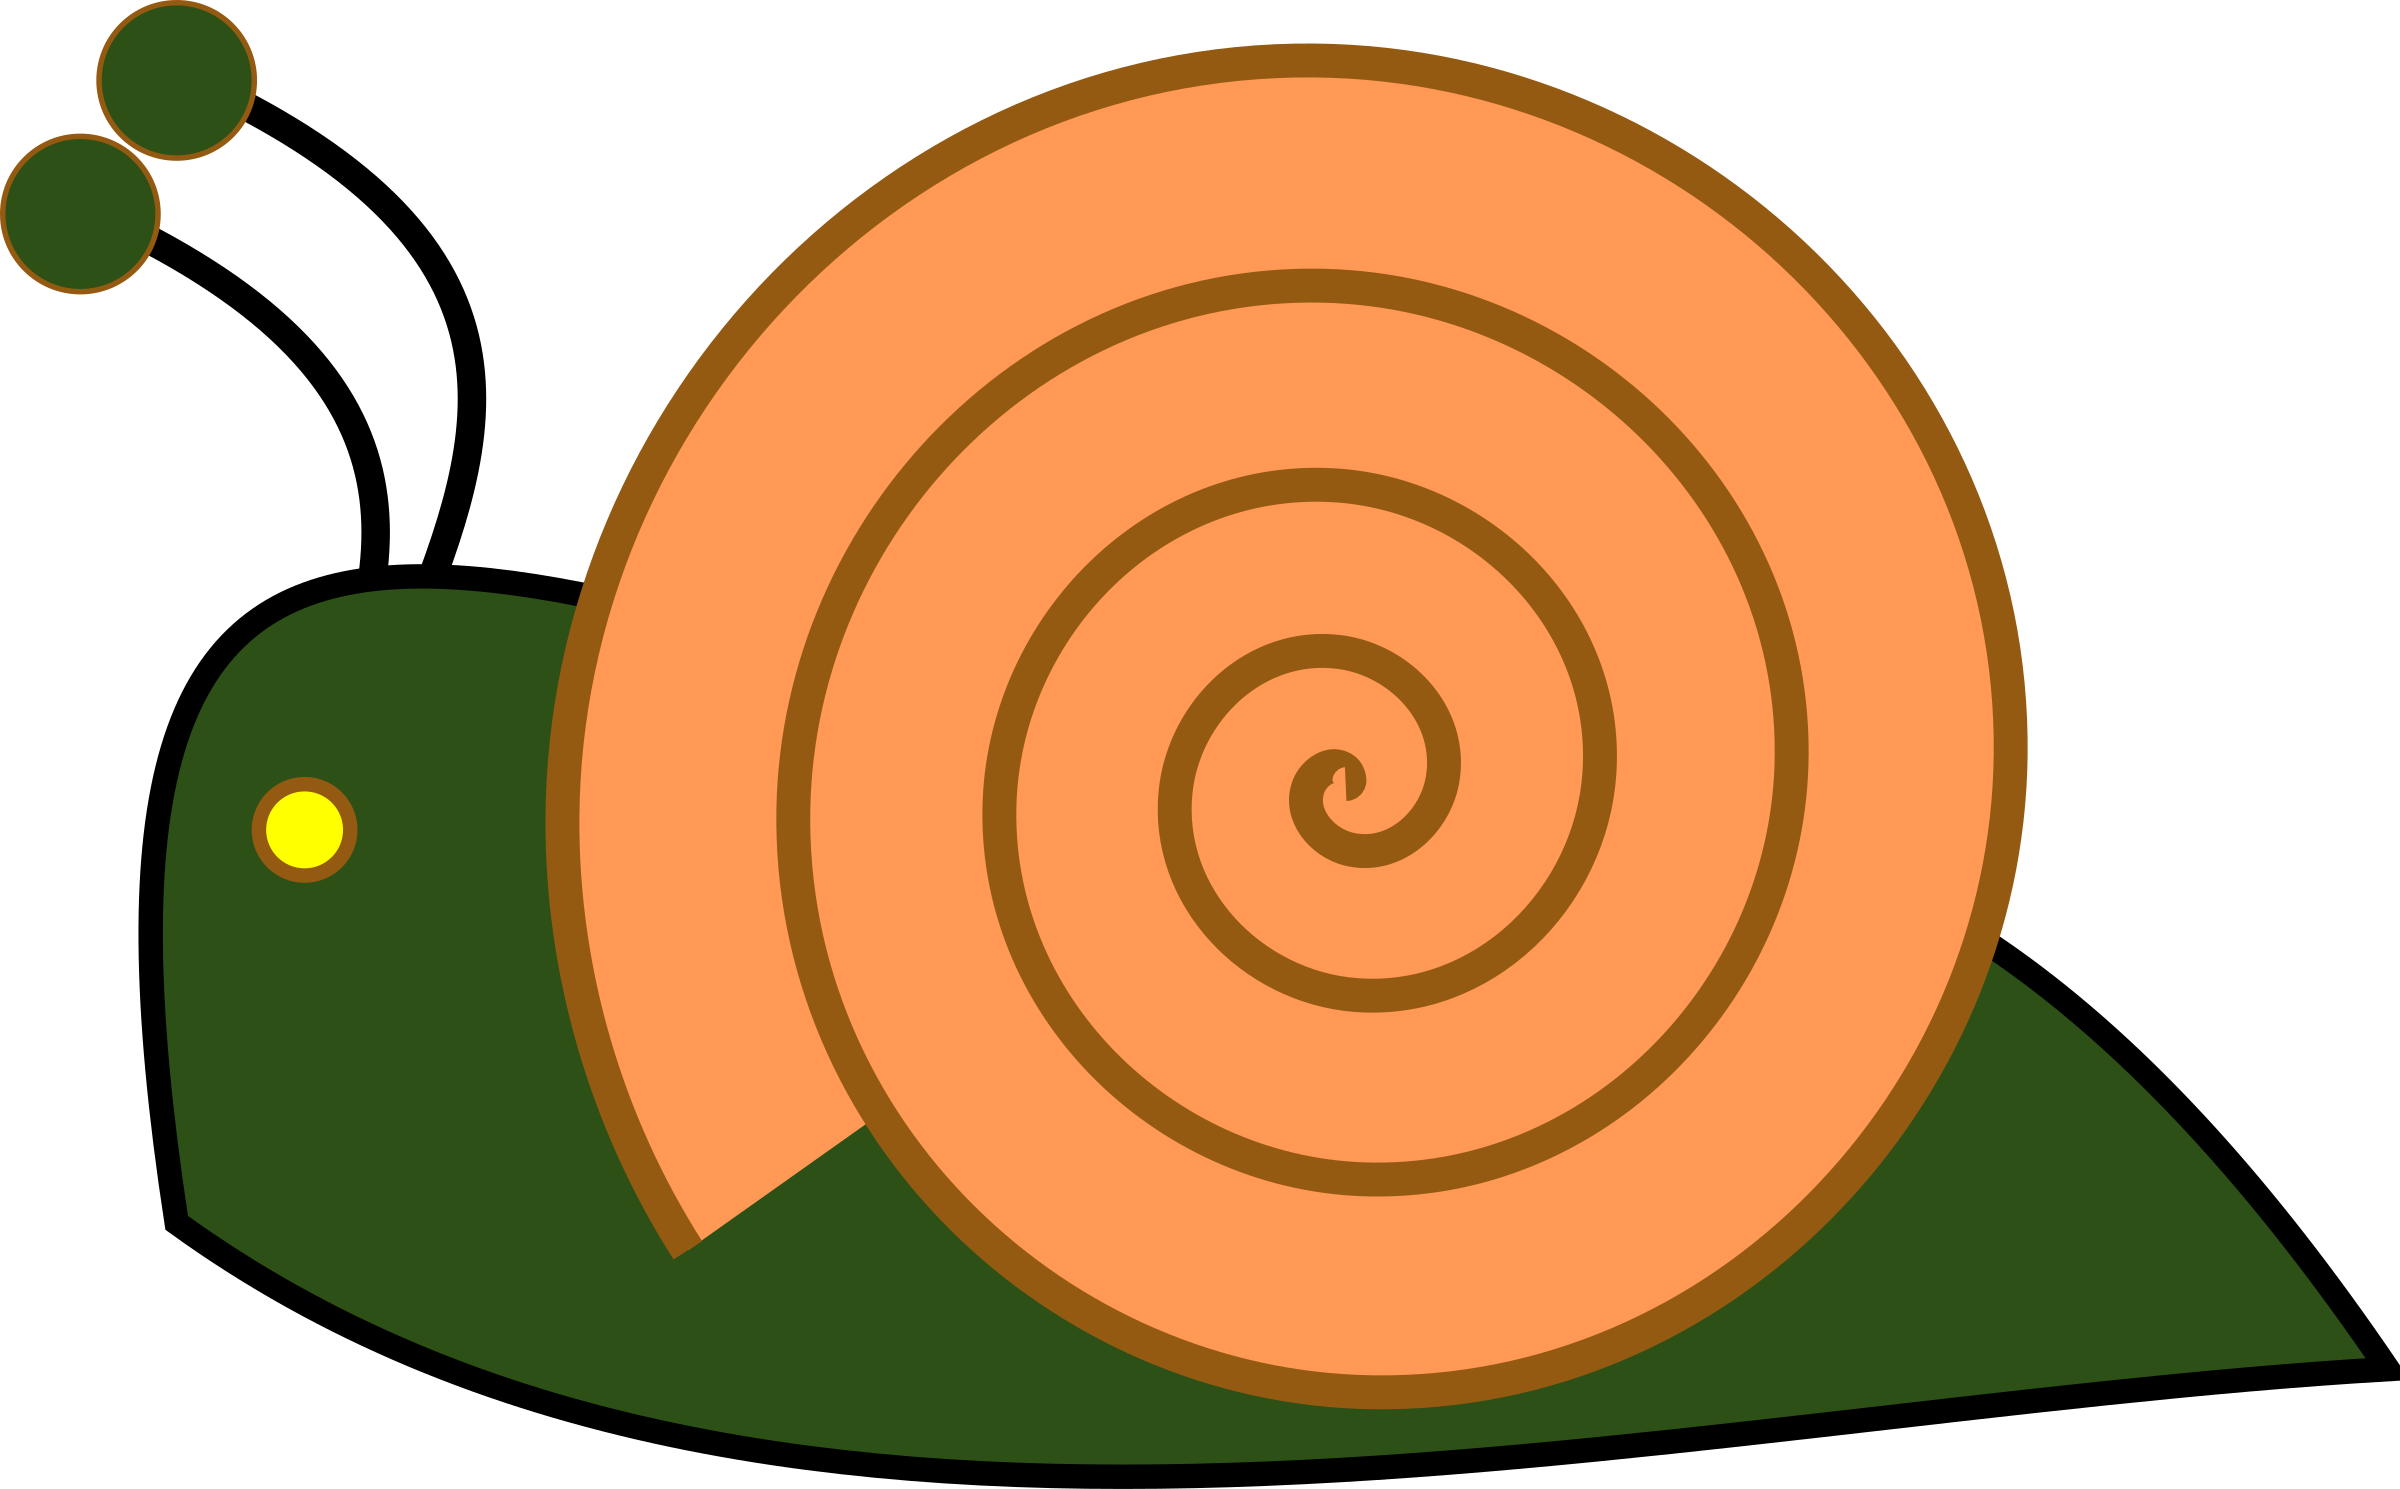 Caracol by irinuca